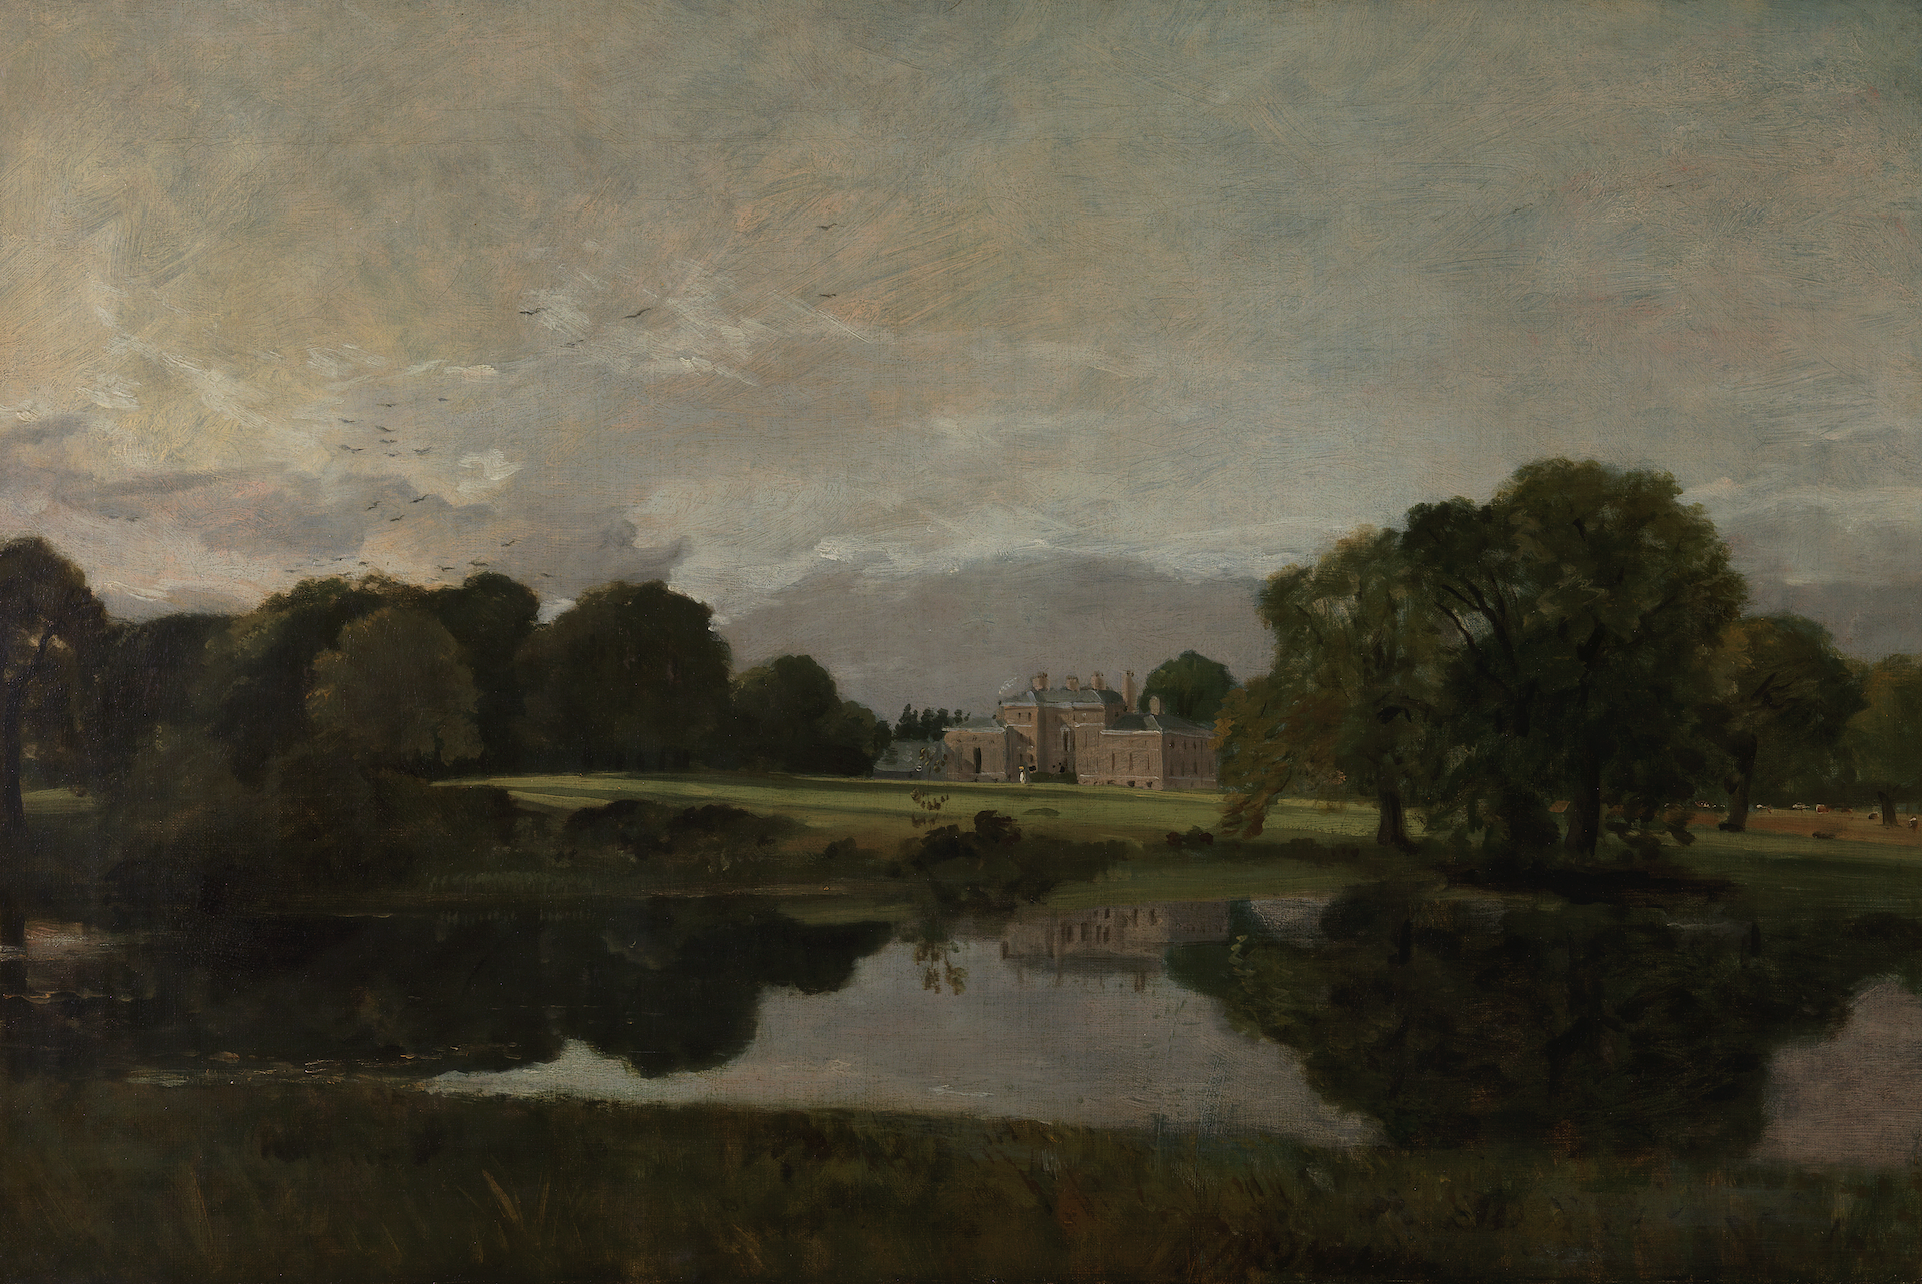 John Constable, Malvern Hall, dans le Warwickshire (1809), Londres, Tate